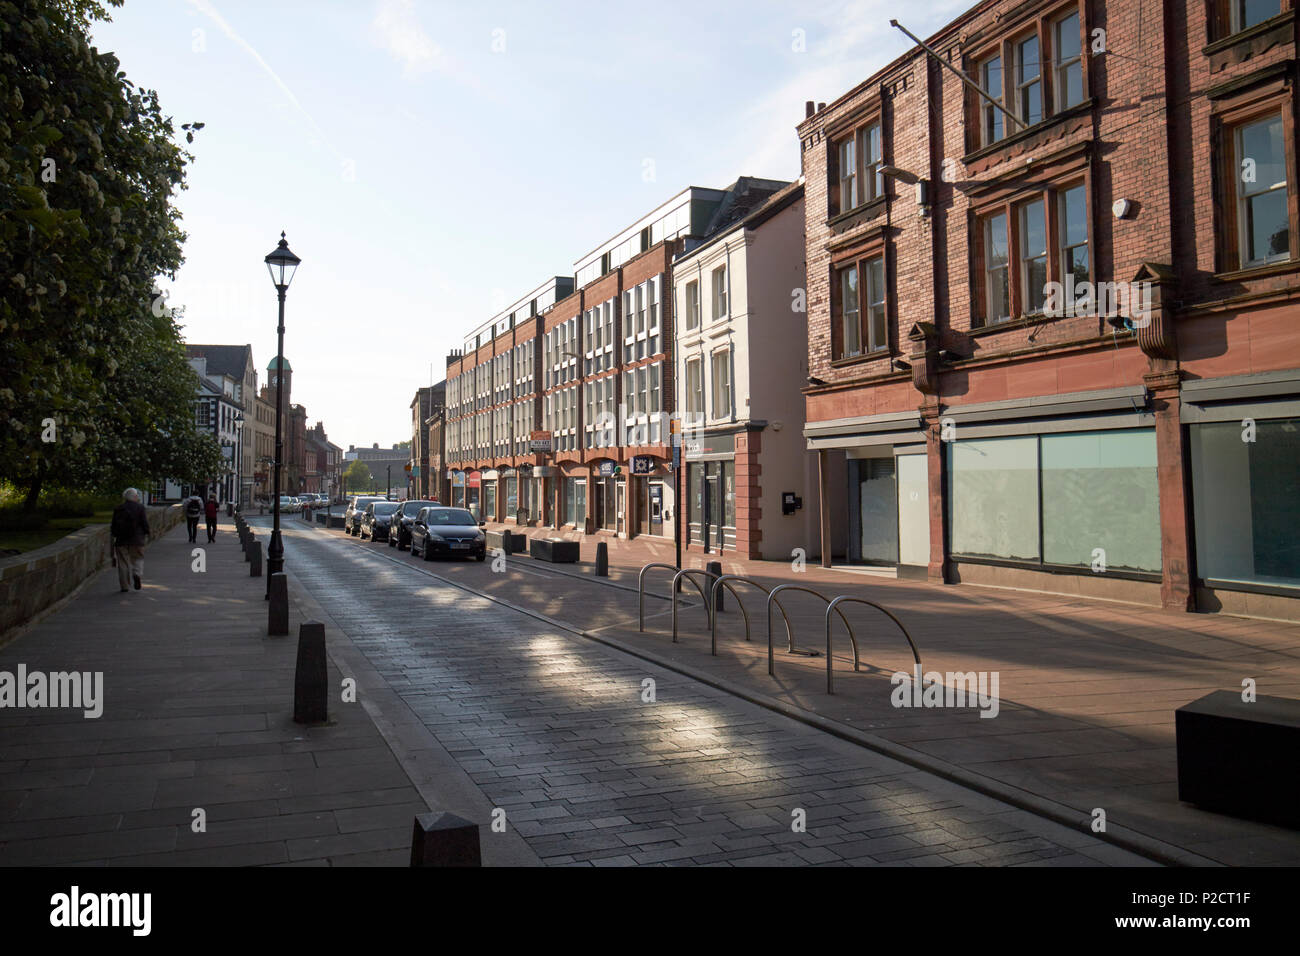 castle street in early evening Carlisle Cumbria England UK - Stock Image